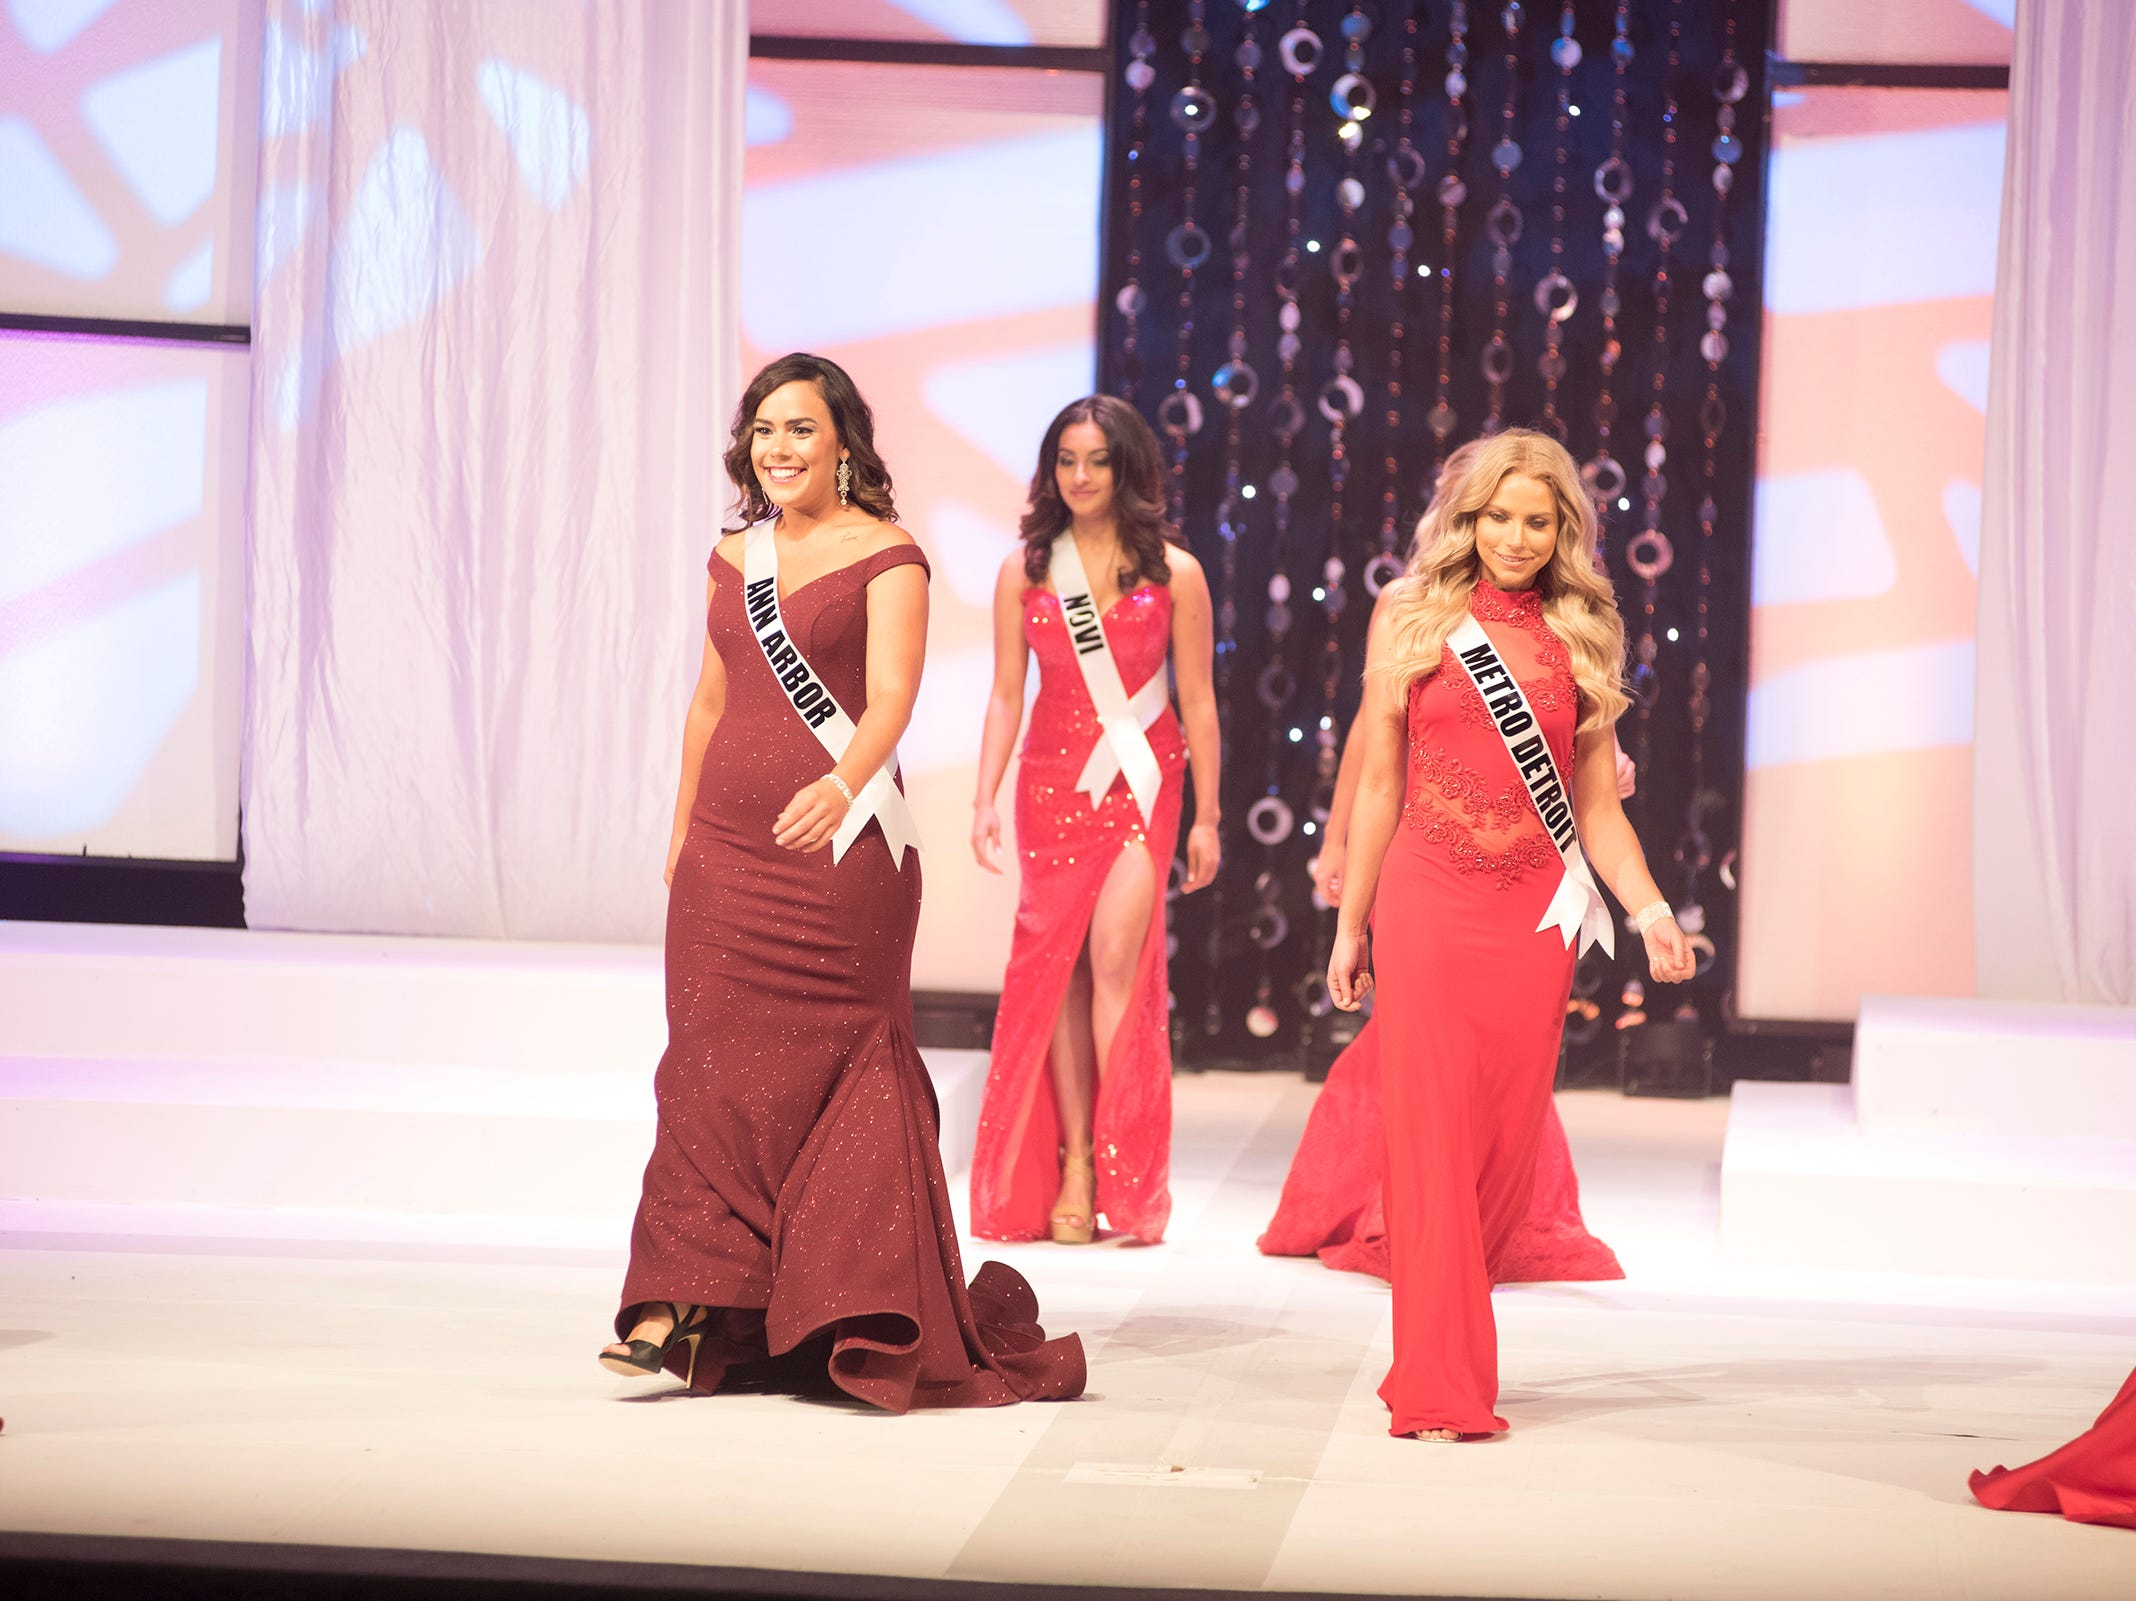 Semifinalists in the Miss Michigan USA pageant compete in formal wear Saturday, Sept. 22, 2018 at McMorran Theater.